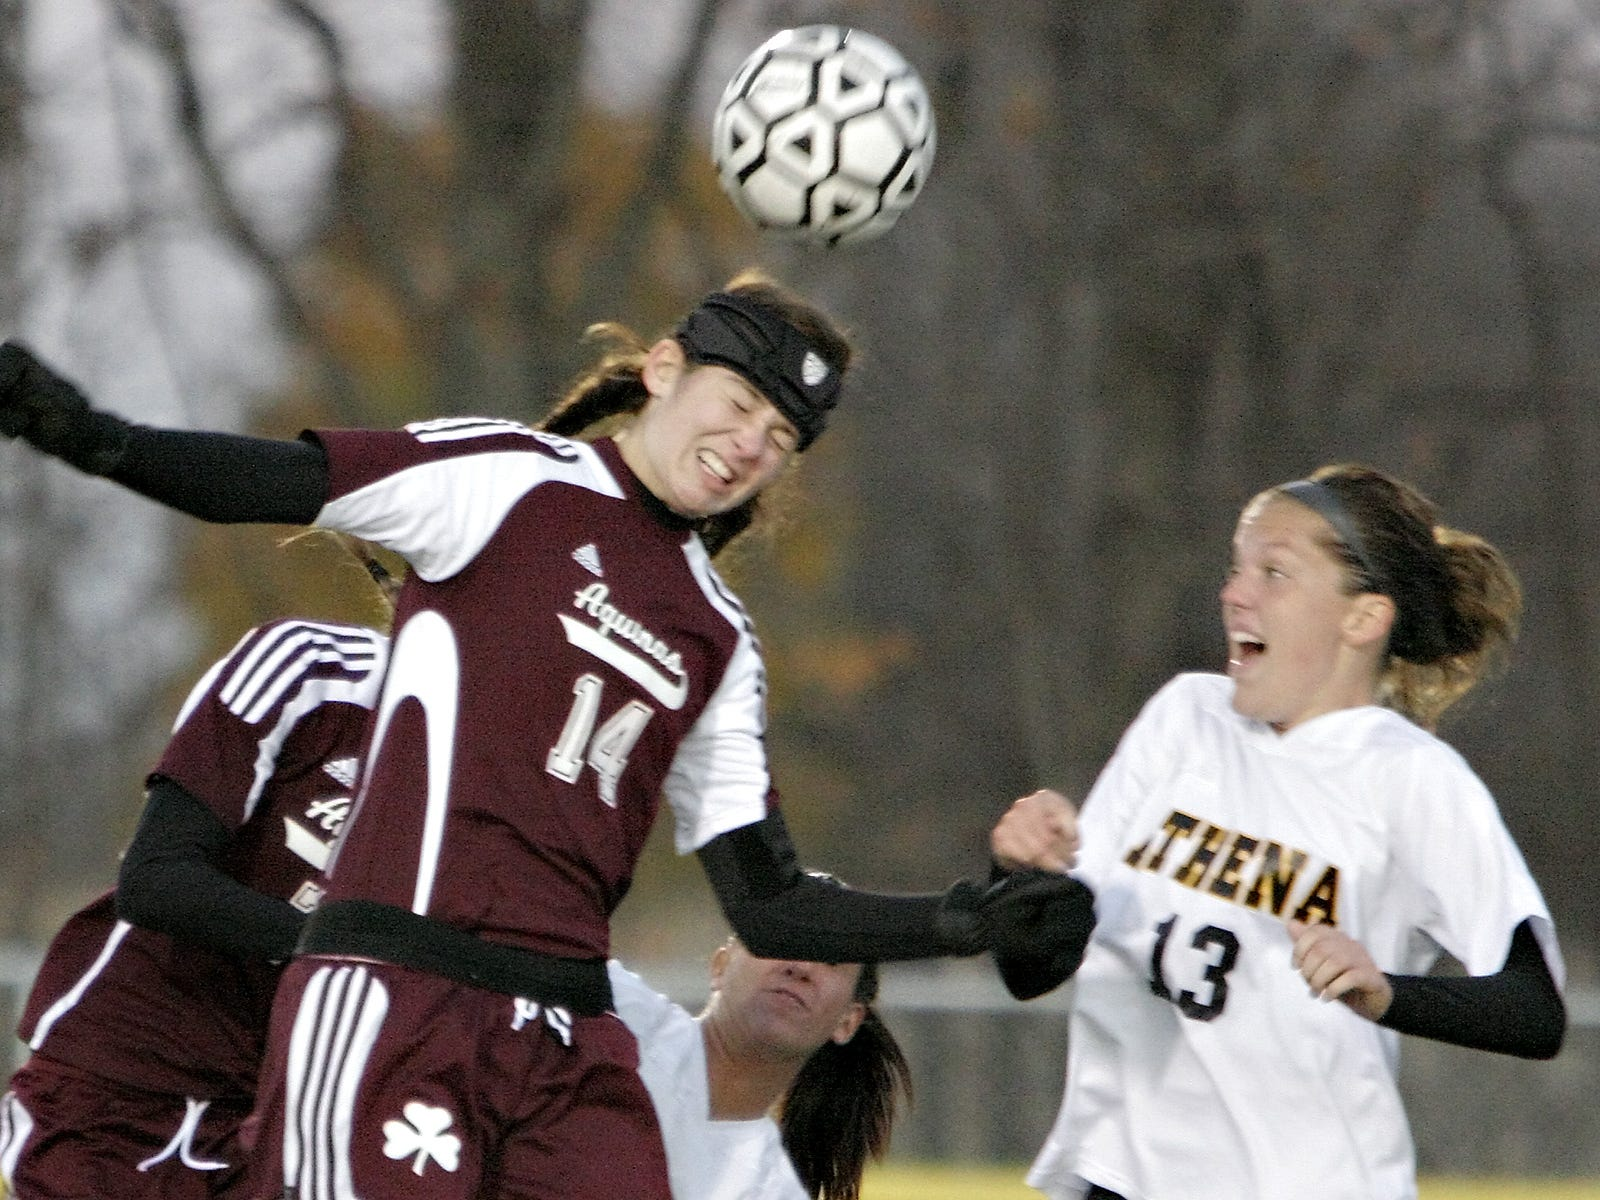 Aquinas' Olivia Guy heads the ball as Greece Athena's Katie Mibaum watches during the Class AA final at Caledonia-Mumford on Nov. 1, 2008.